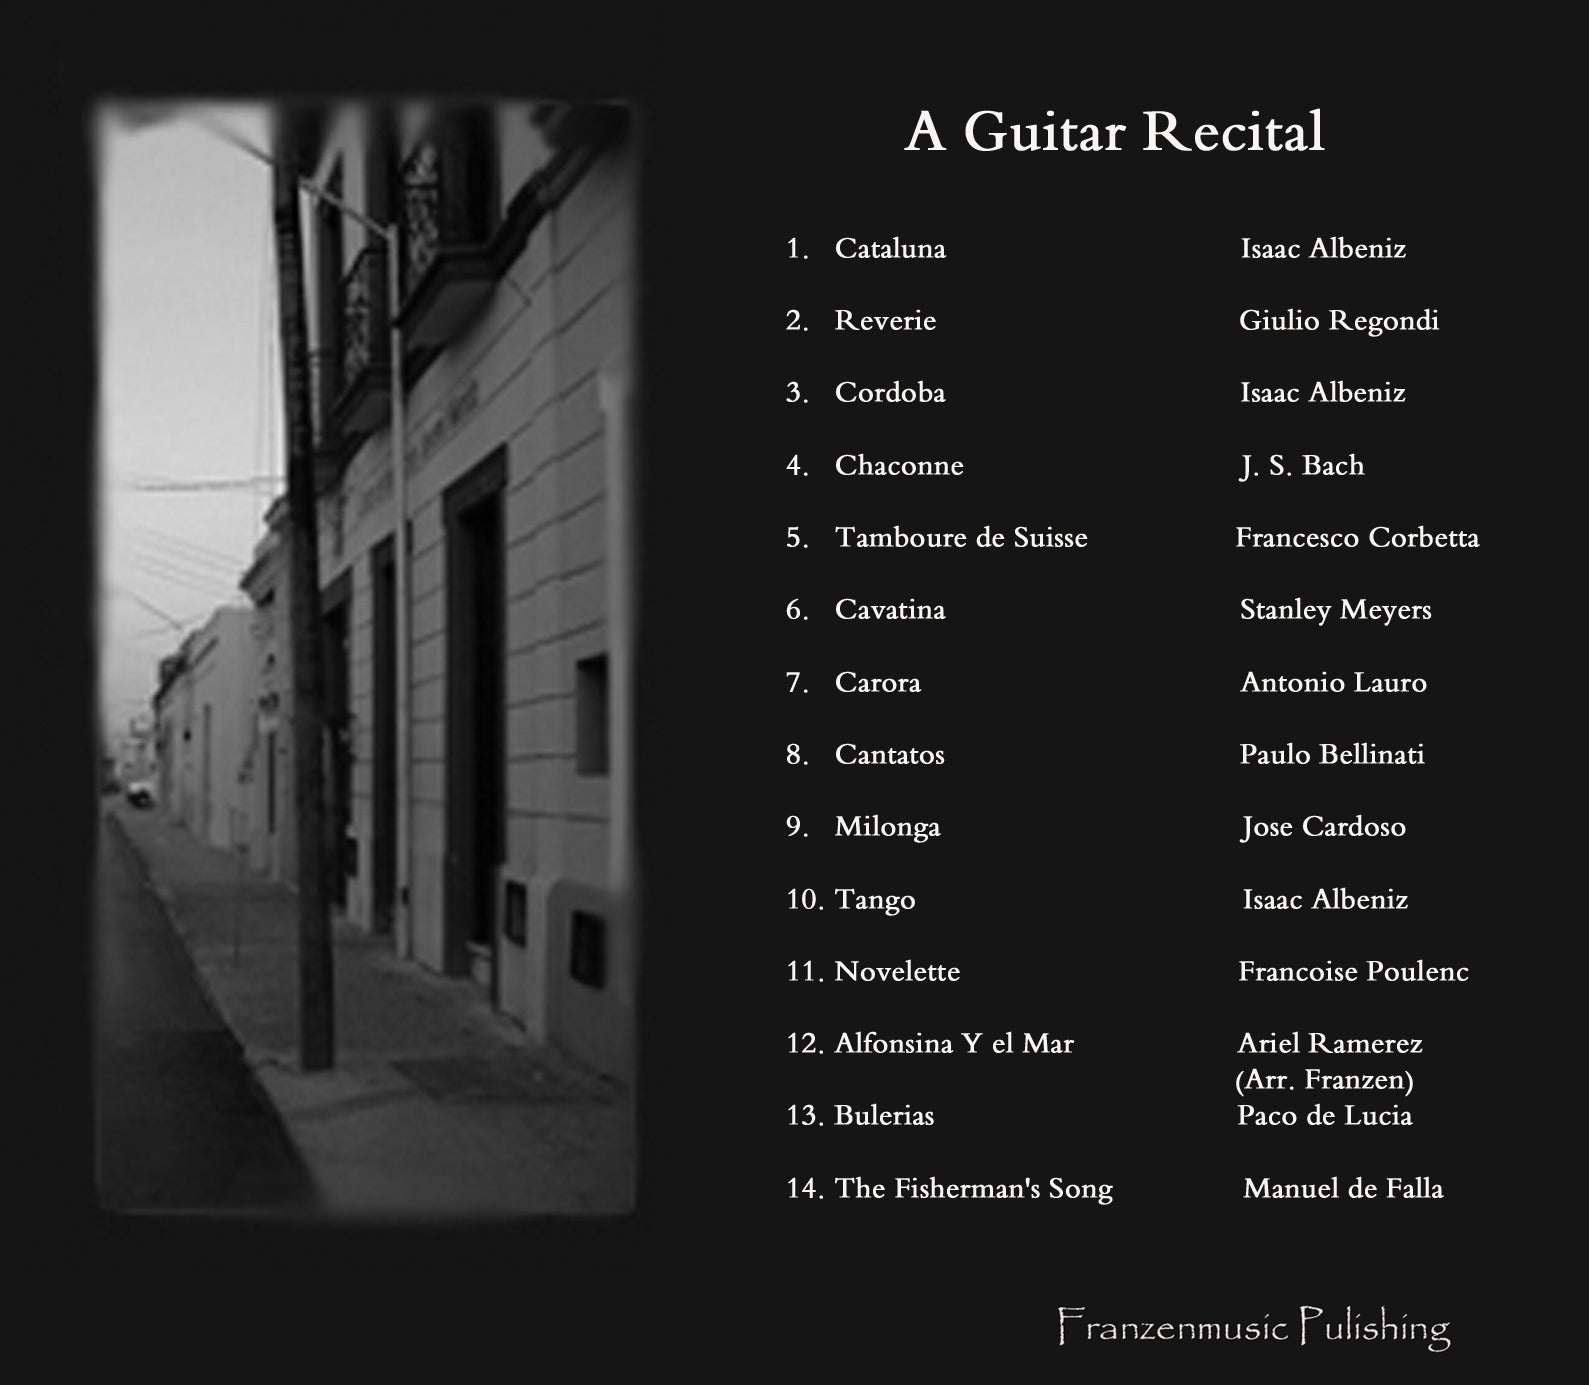 A Guitar Recital